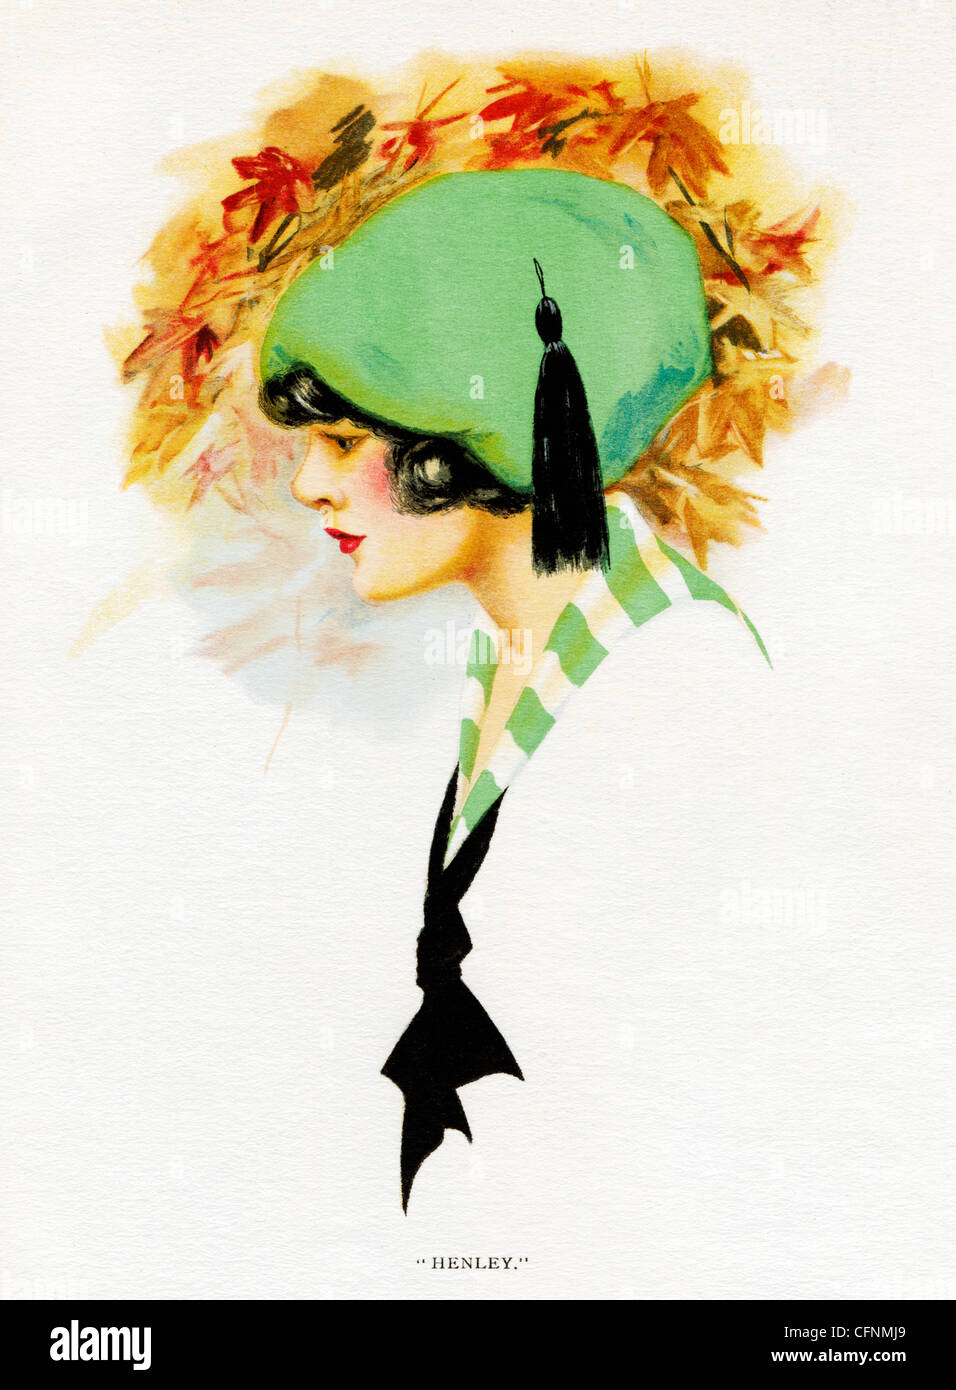 Henley, 1920 Art Deco illustration of a pretty girl in a green hat - Stock Image